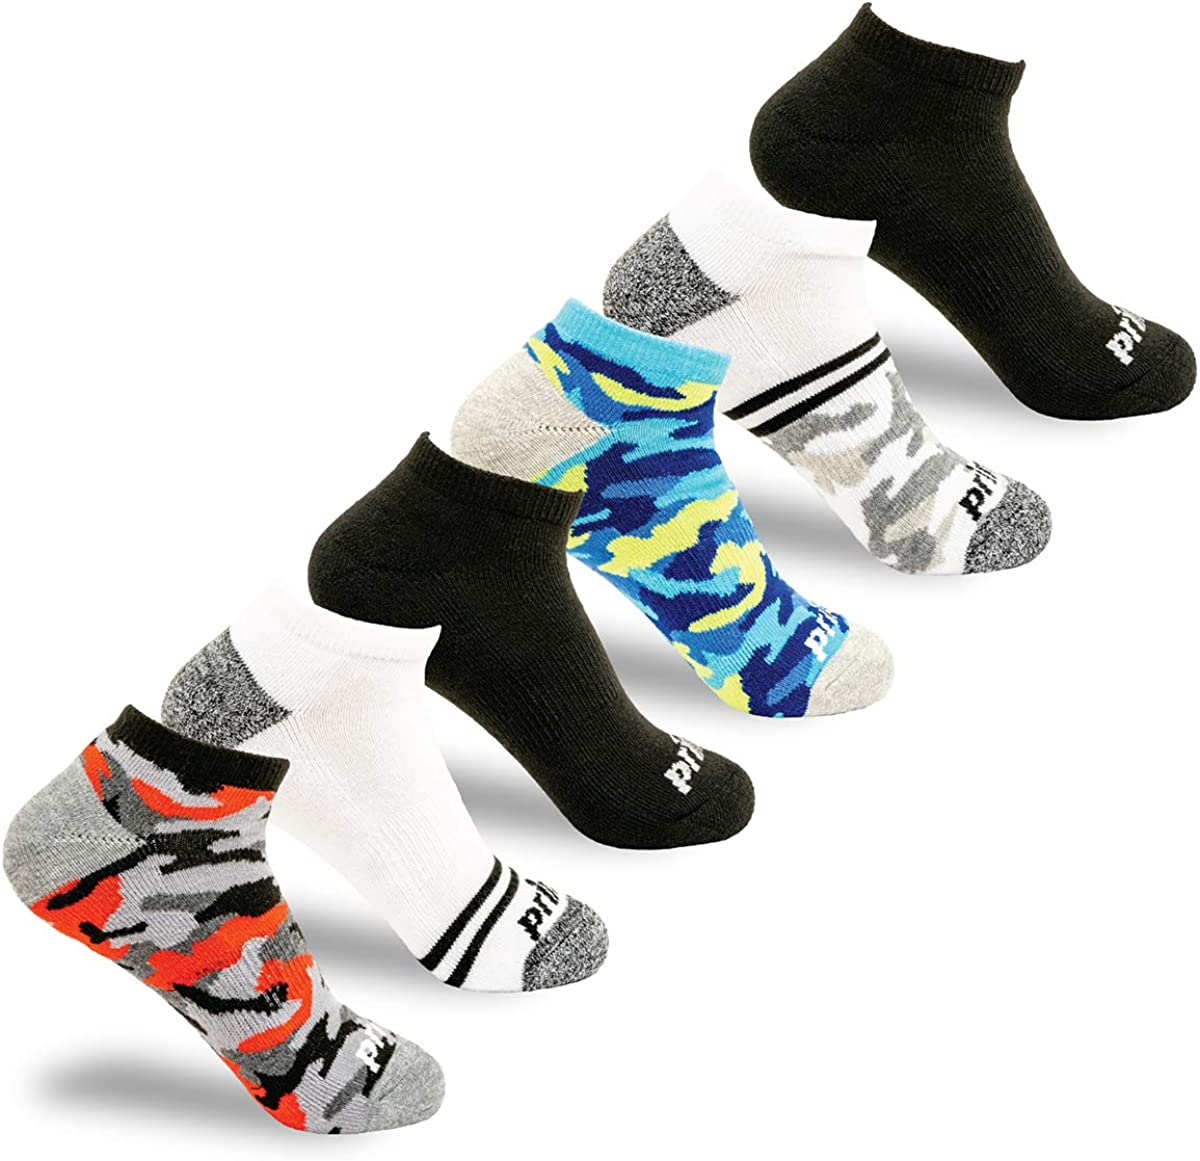 Prince Boys' Low Cut Athletic Socks with Cushion for Active Kids (6 Pair Pack)